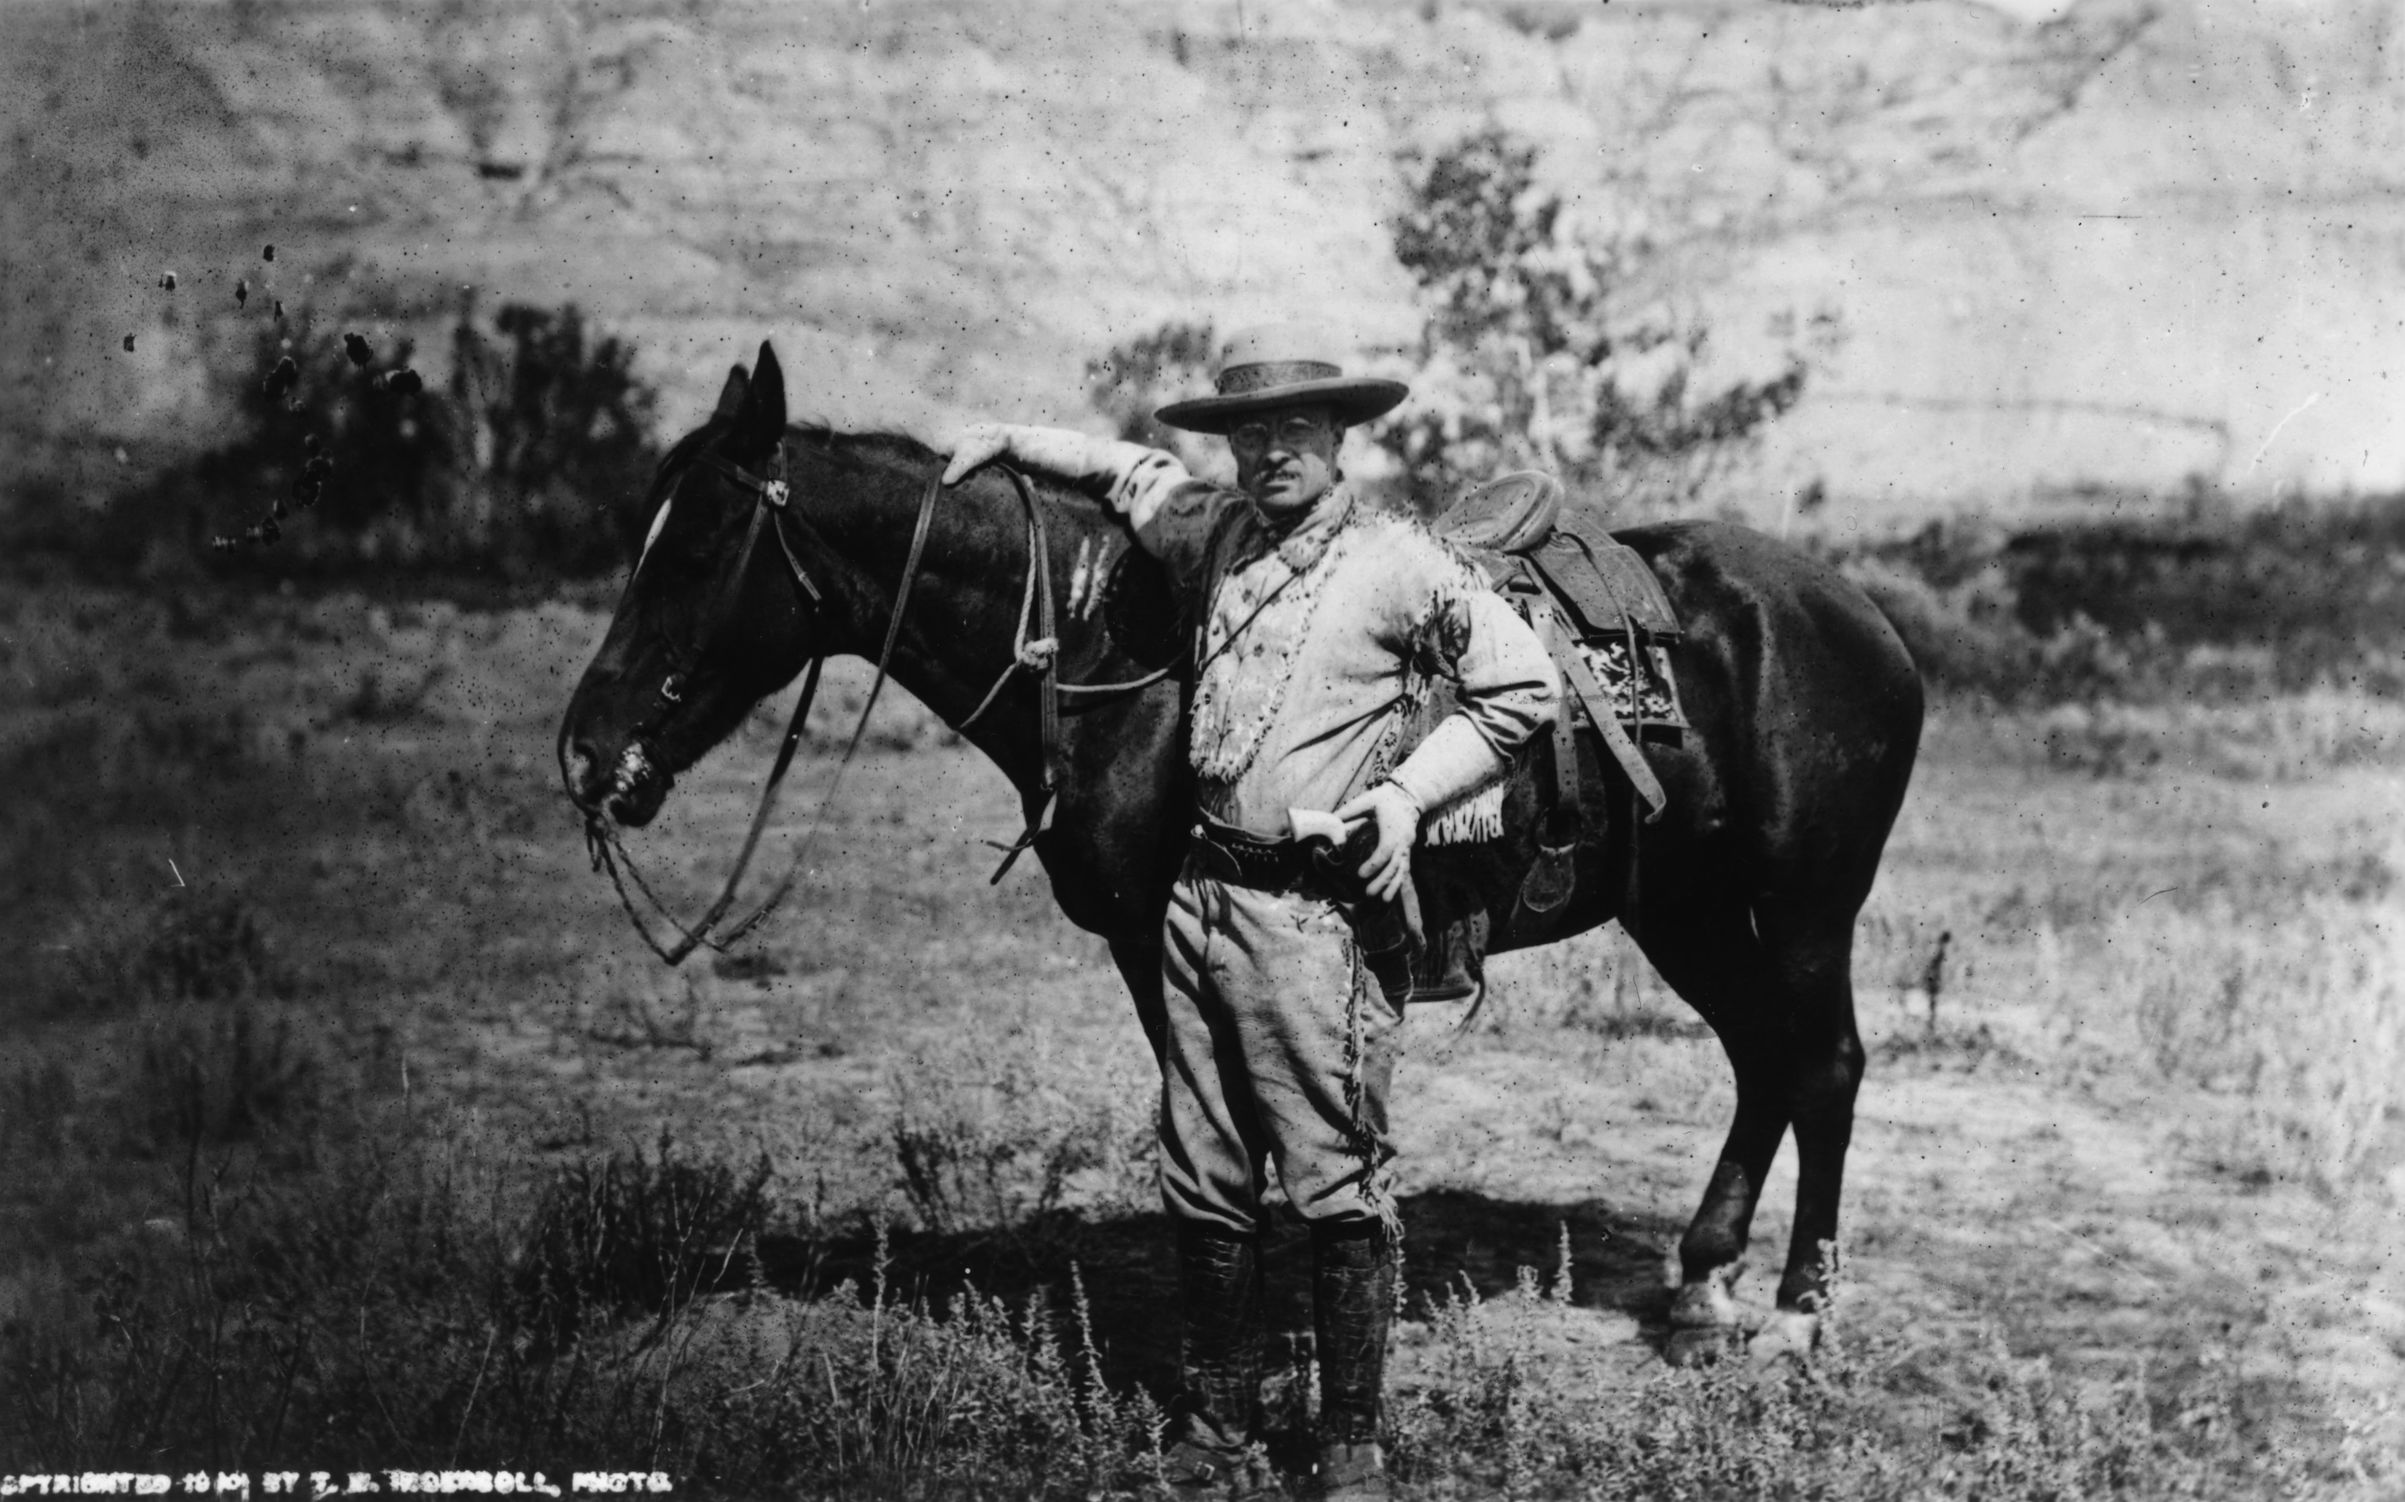 American politician and future President of the United States of America, Theodore Roosevelt (1858 - 1919) during a visit to the Badlands of Dakota after the death of his first wife, in 1885.